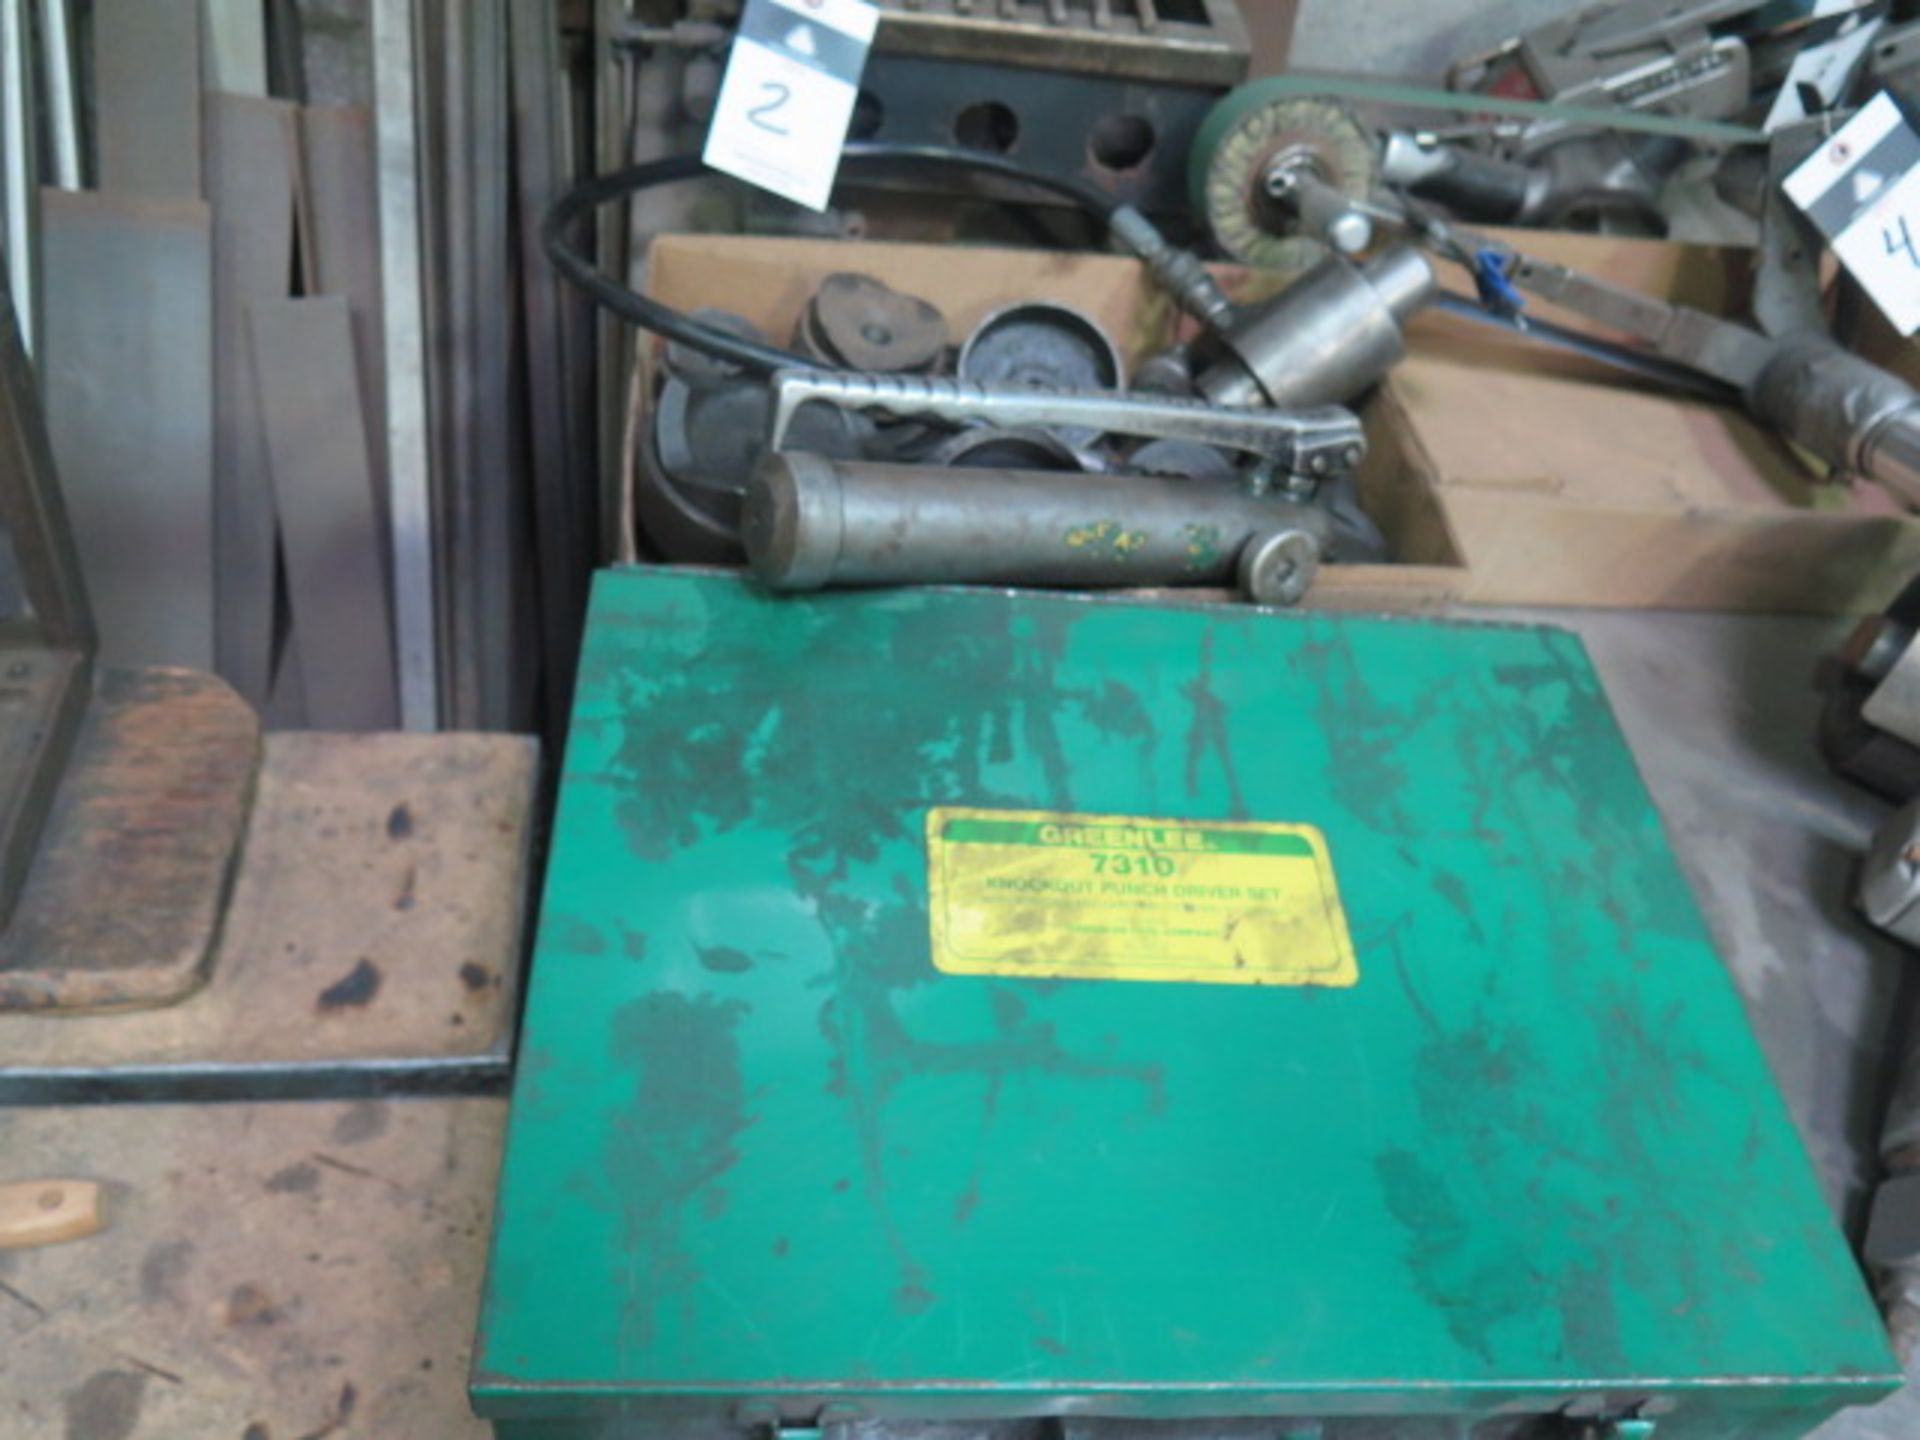 Lot 1 - Greenlee 7310 Hydraulic Knockout Punch Driver Set